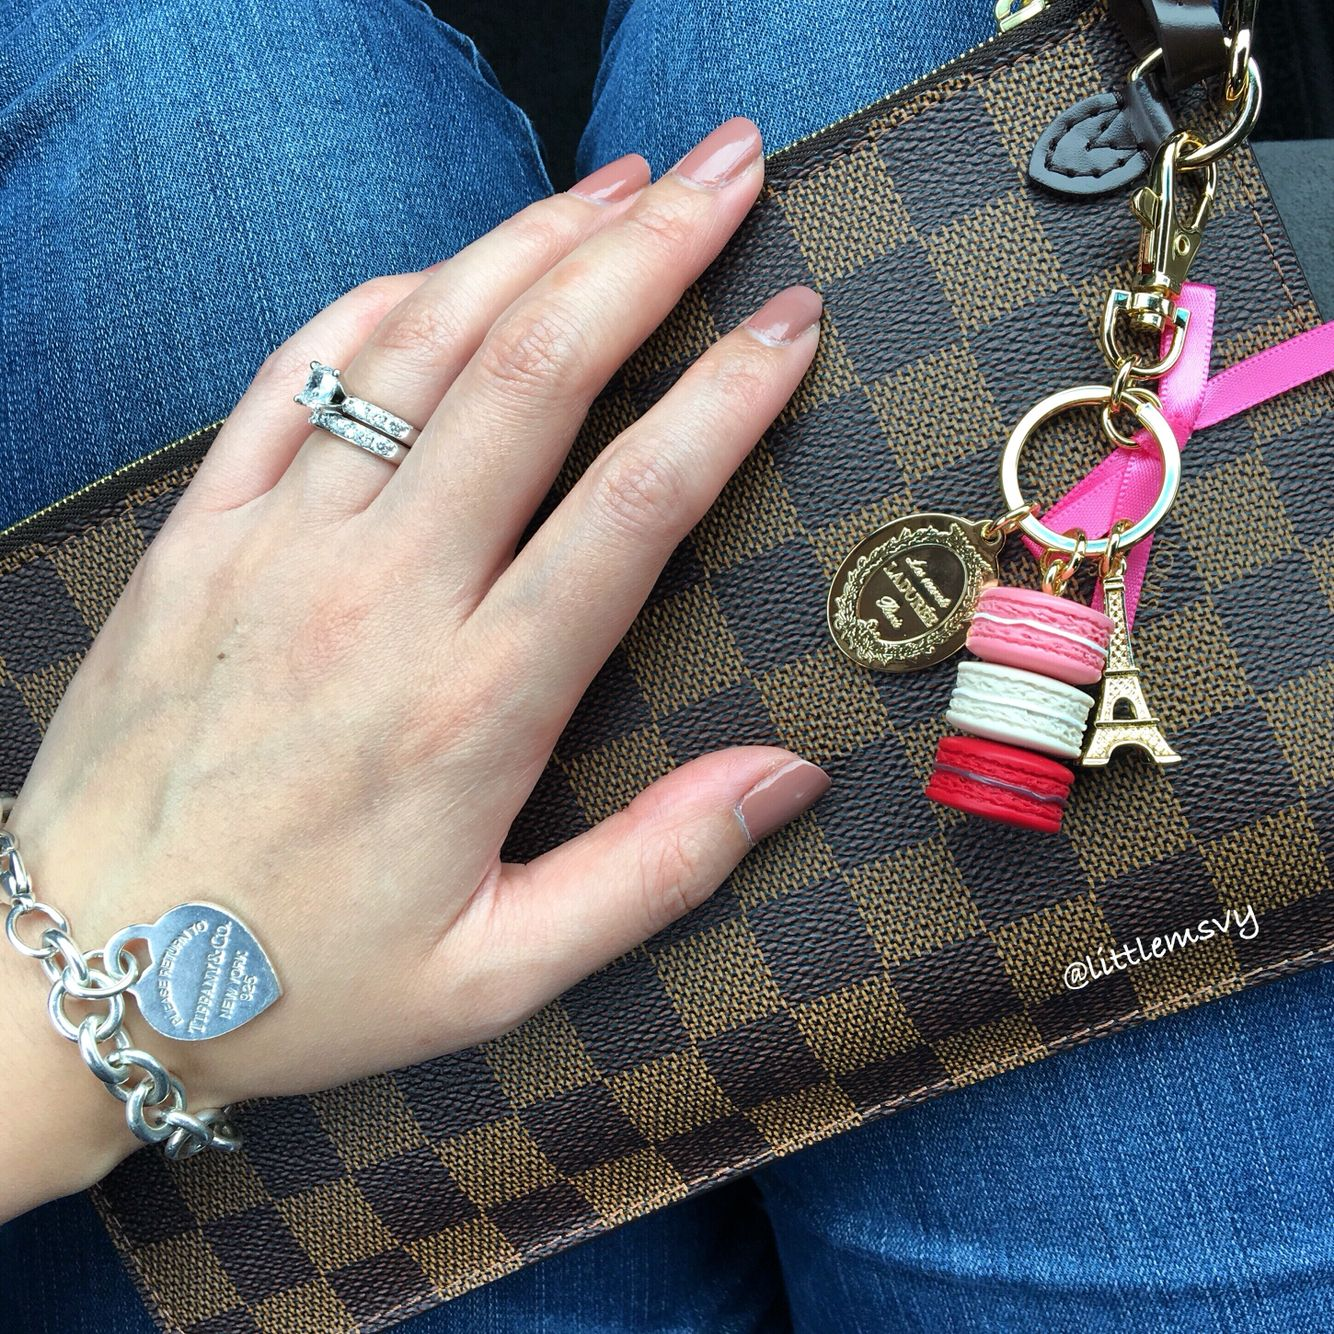 Louis Vuitton Neverfull Clutch in Damier Ebene .. Laduree Bag Charm ..  Tiffany and Co Heart Tag Bracelet f489674d56